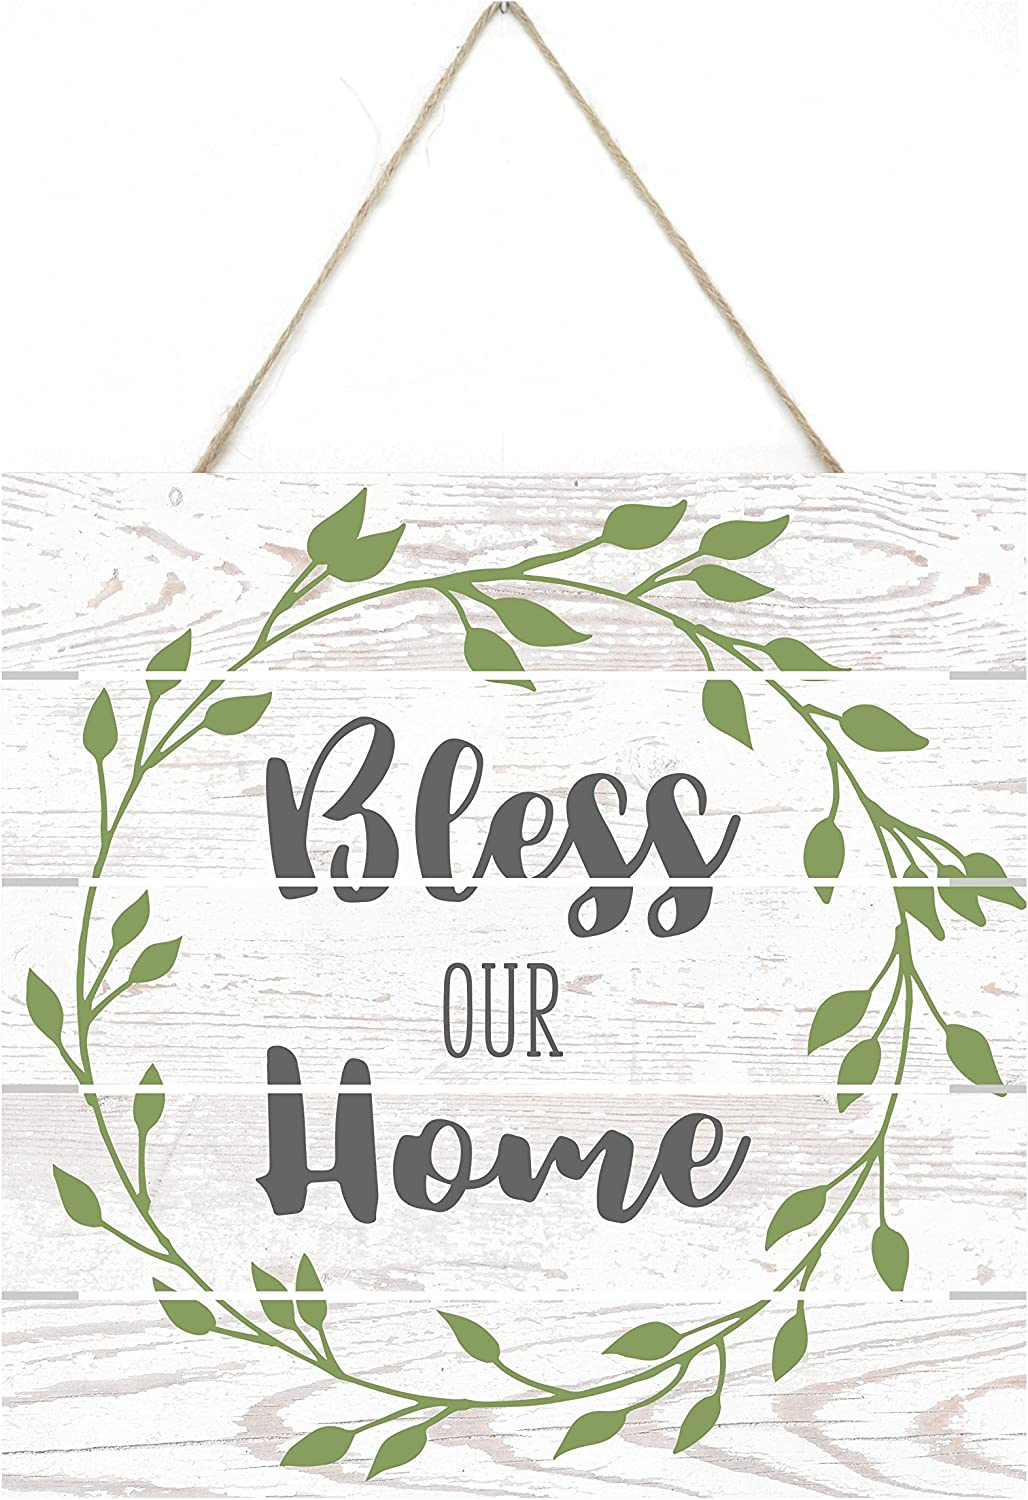 Bless Our Home Floral Wreath Wooden Plank Sign 8x8